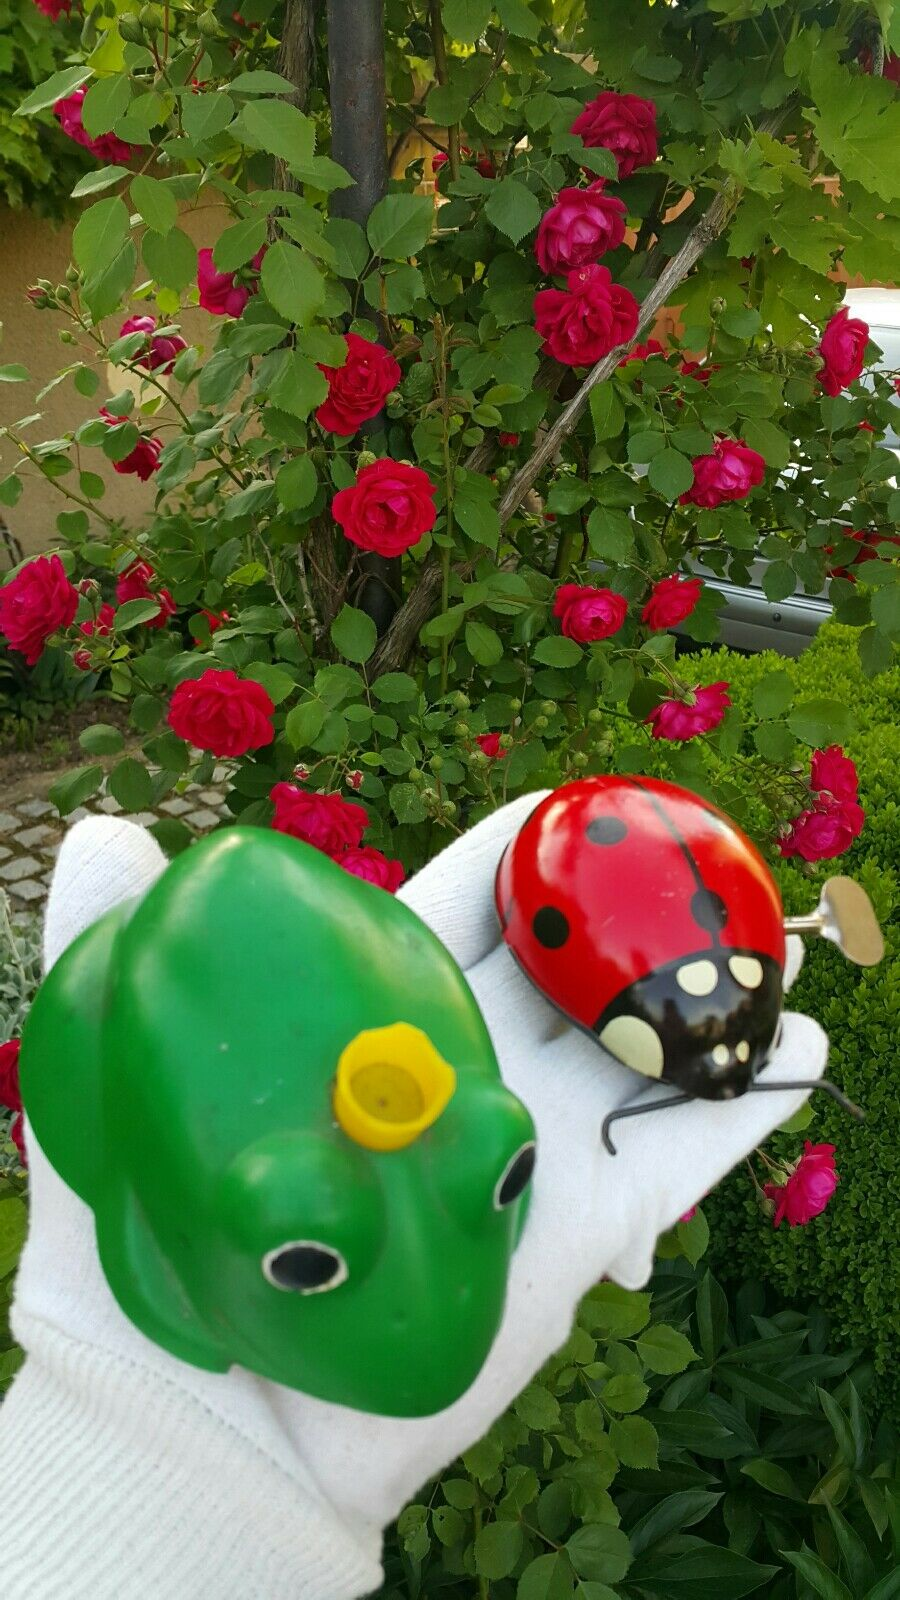 VINTAGE FROG AND LADYBUG TIN TOY FRICTION WIND UP RUSSIA USSR SOVIET CCCP РСФСР